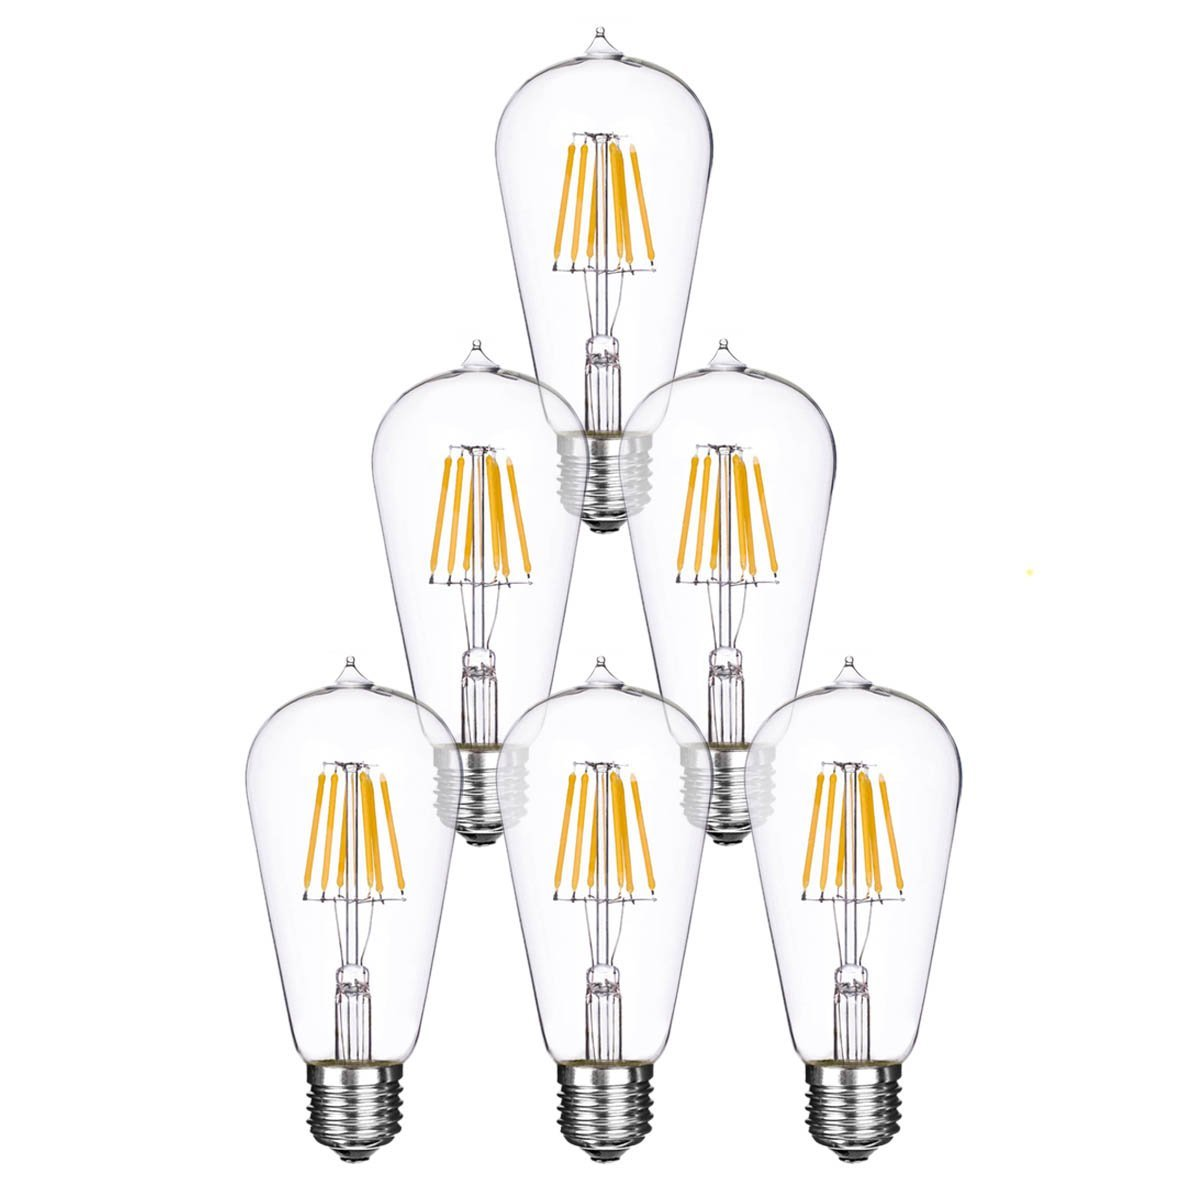 Homestia LED Non Dimmable ST58 4W 110V E26 Warm Lighting Filament High Operating Life 2700-3000K Edison Style Bulb(6 pack)